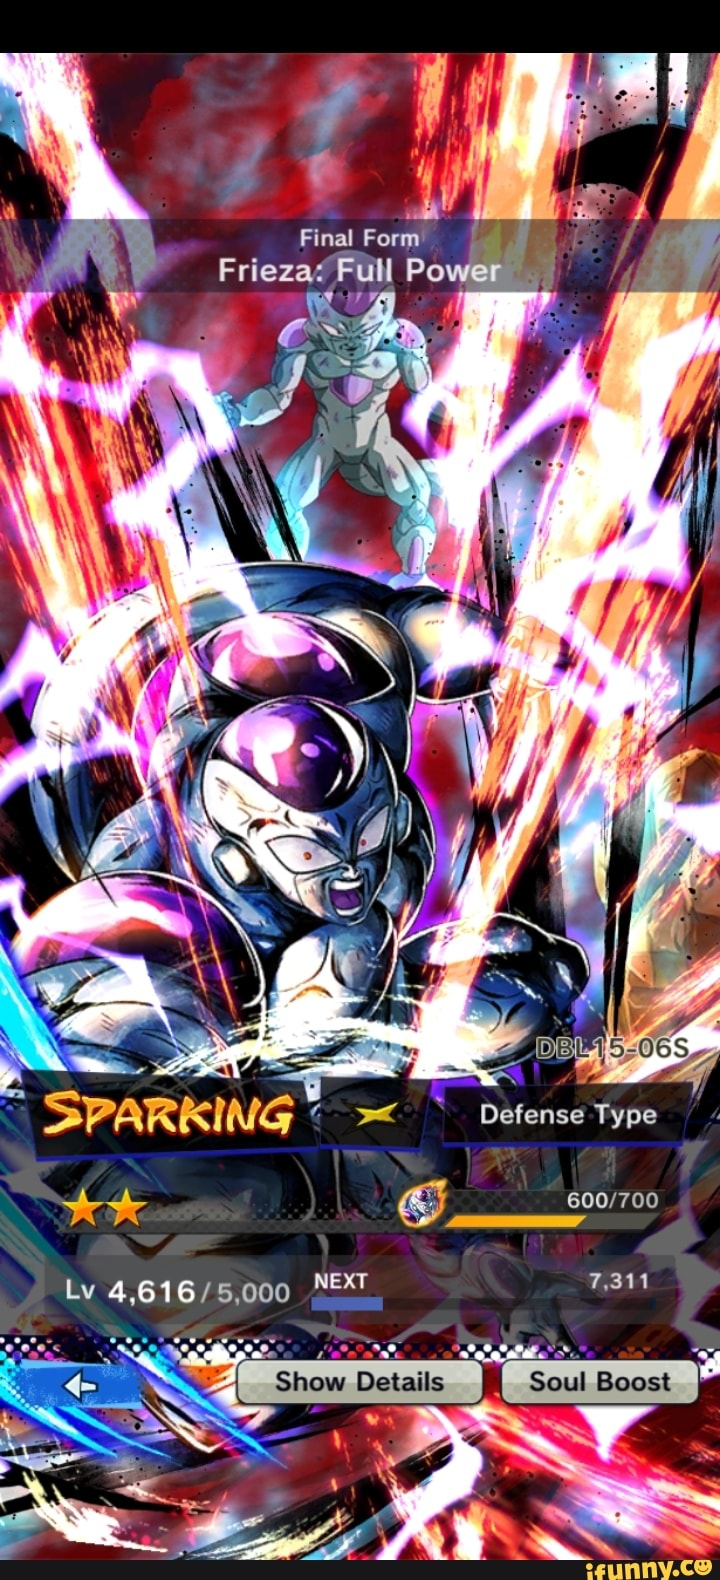 Goku Super Saiyan Final Form' Frieza Full Power SPARKING ...